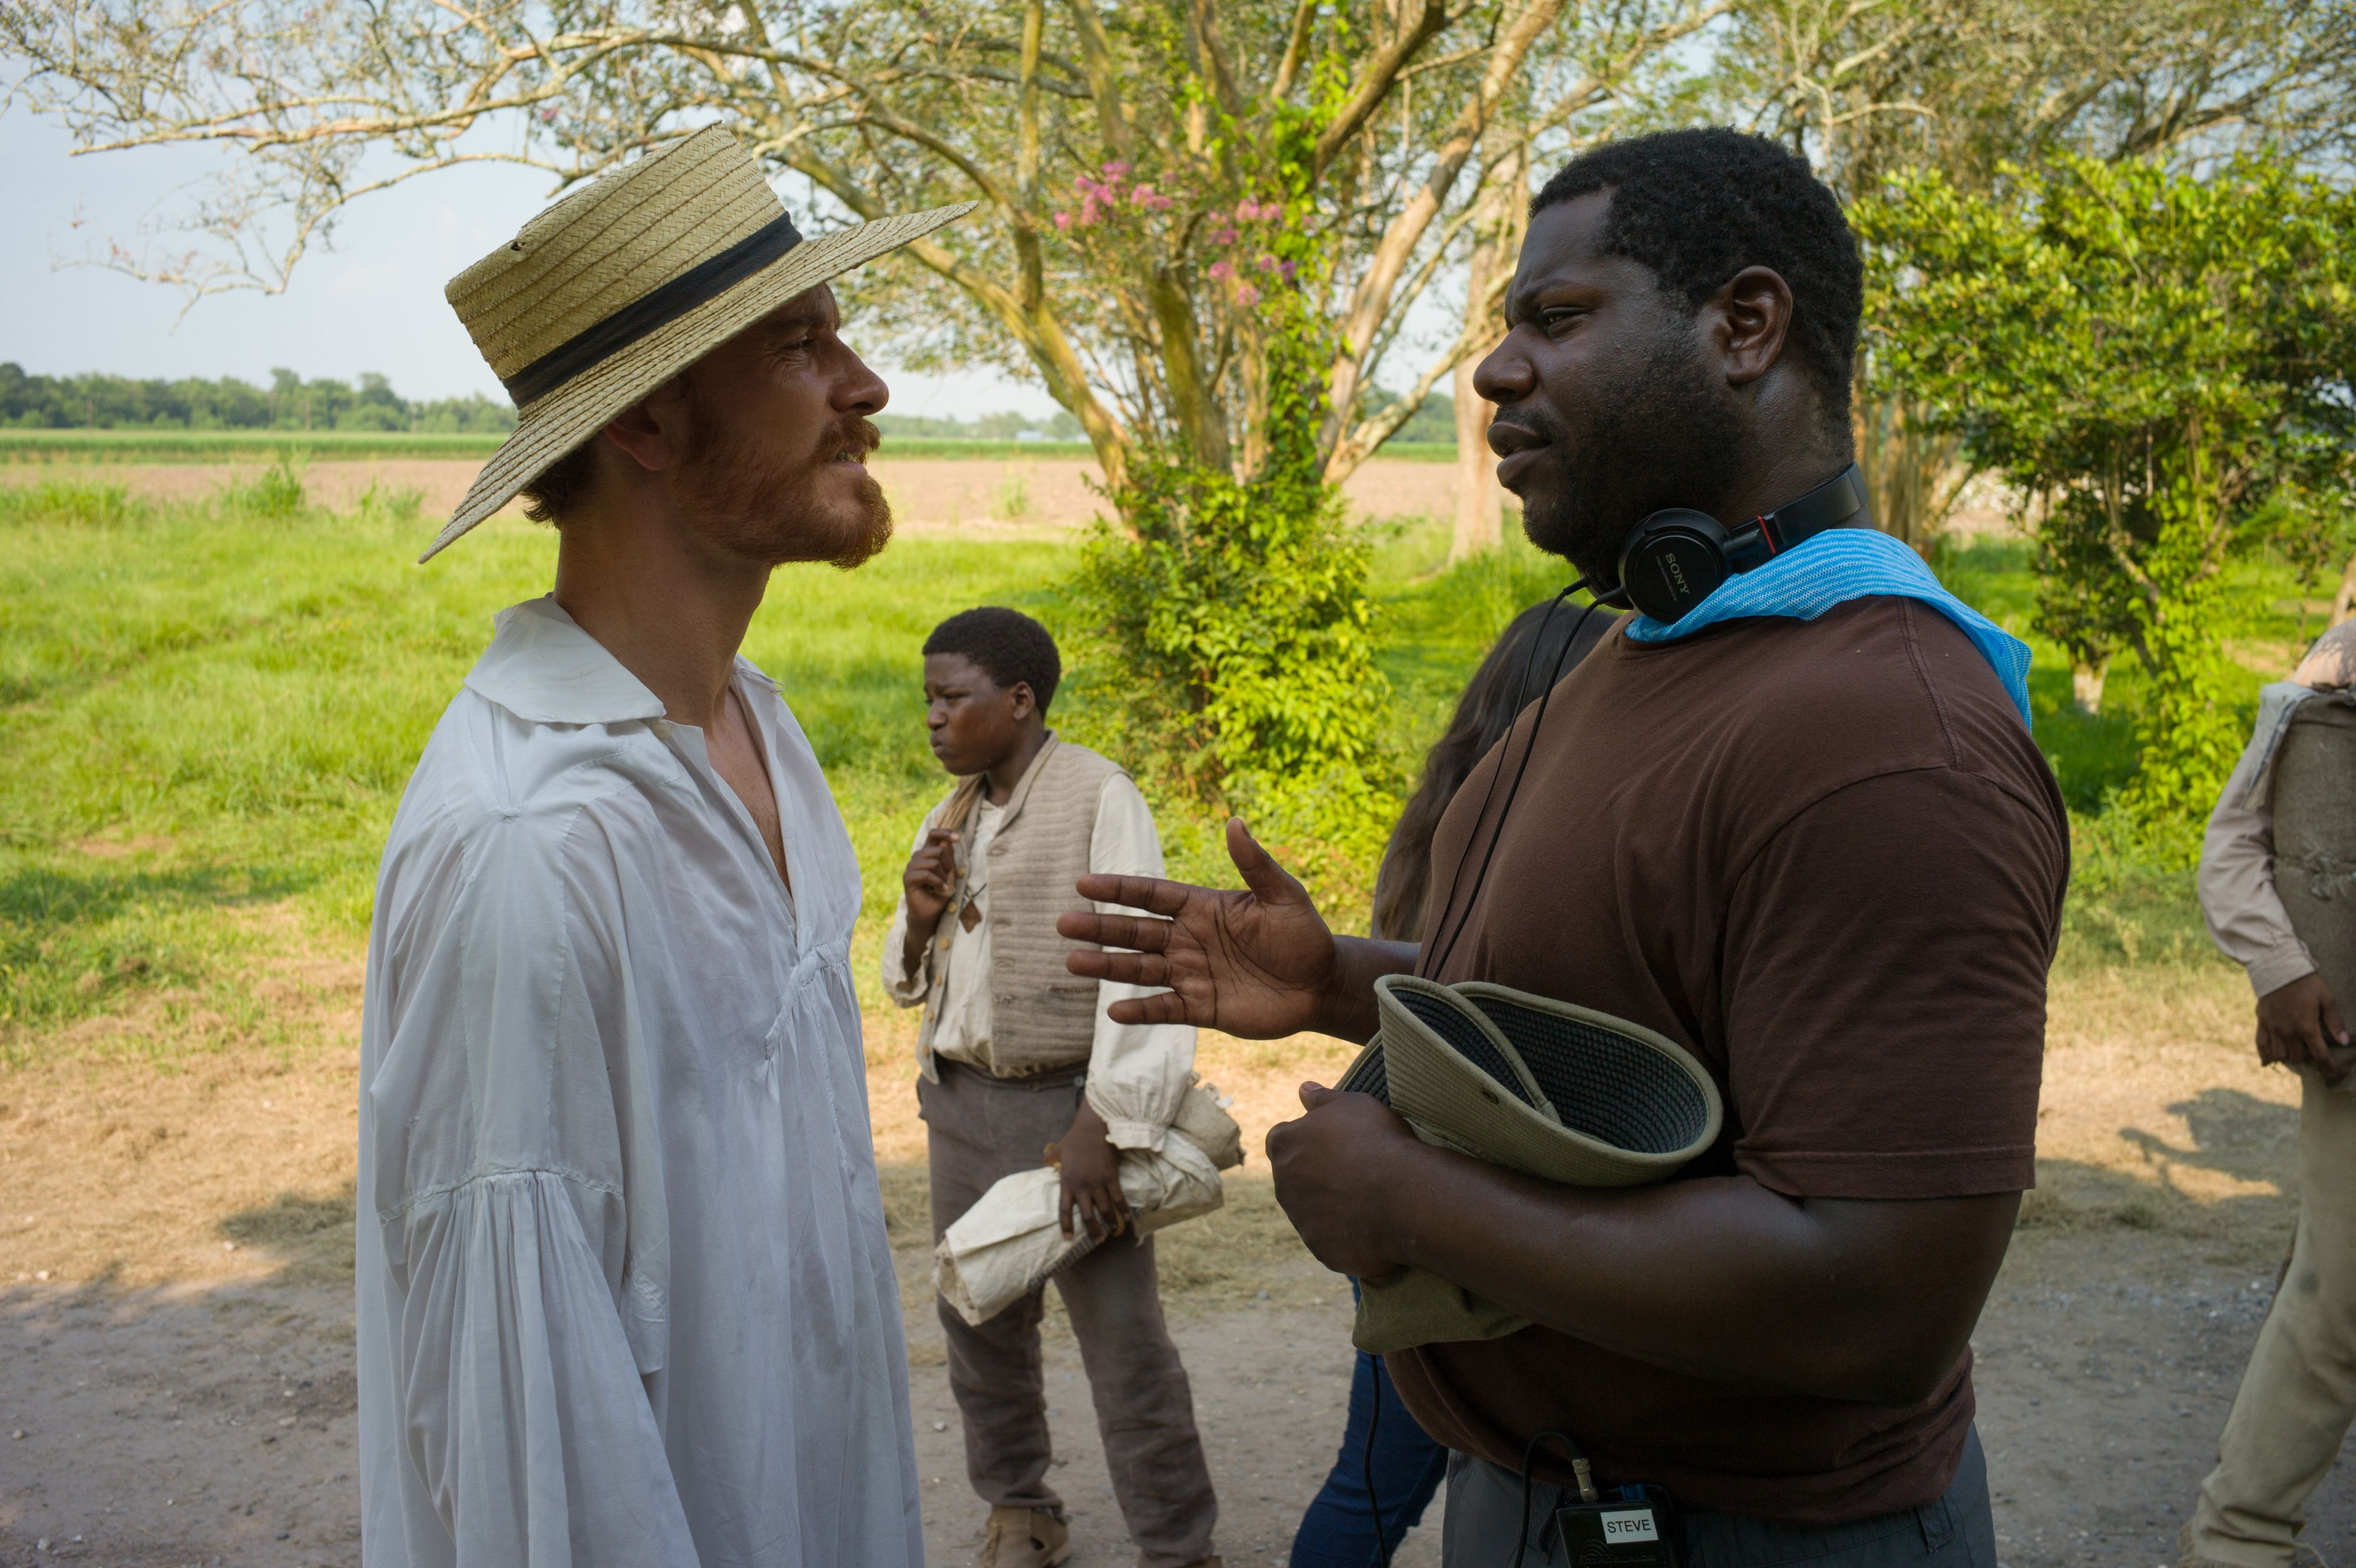 12 YEARS A SLAVE Images. Steve McQueen's 12 YEARS A SLAVE ...